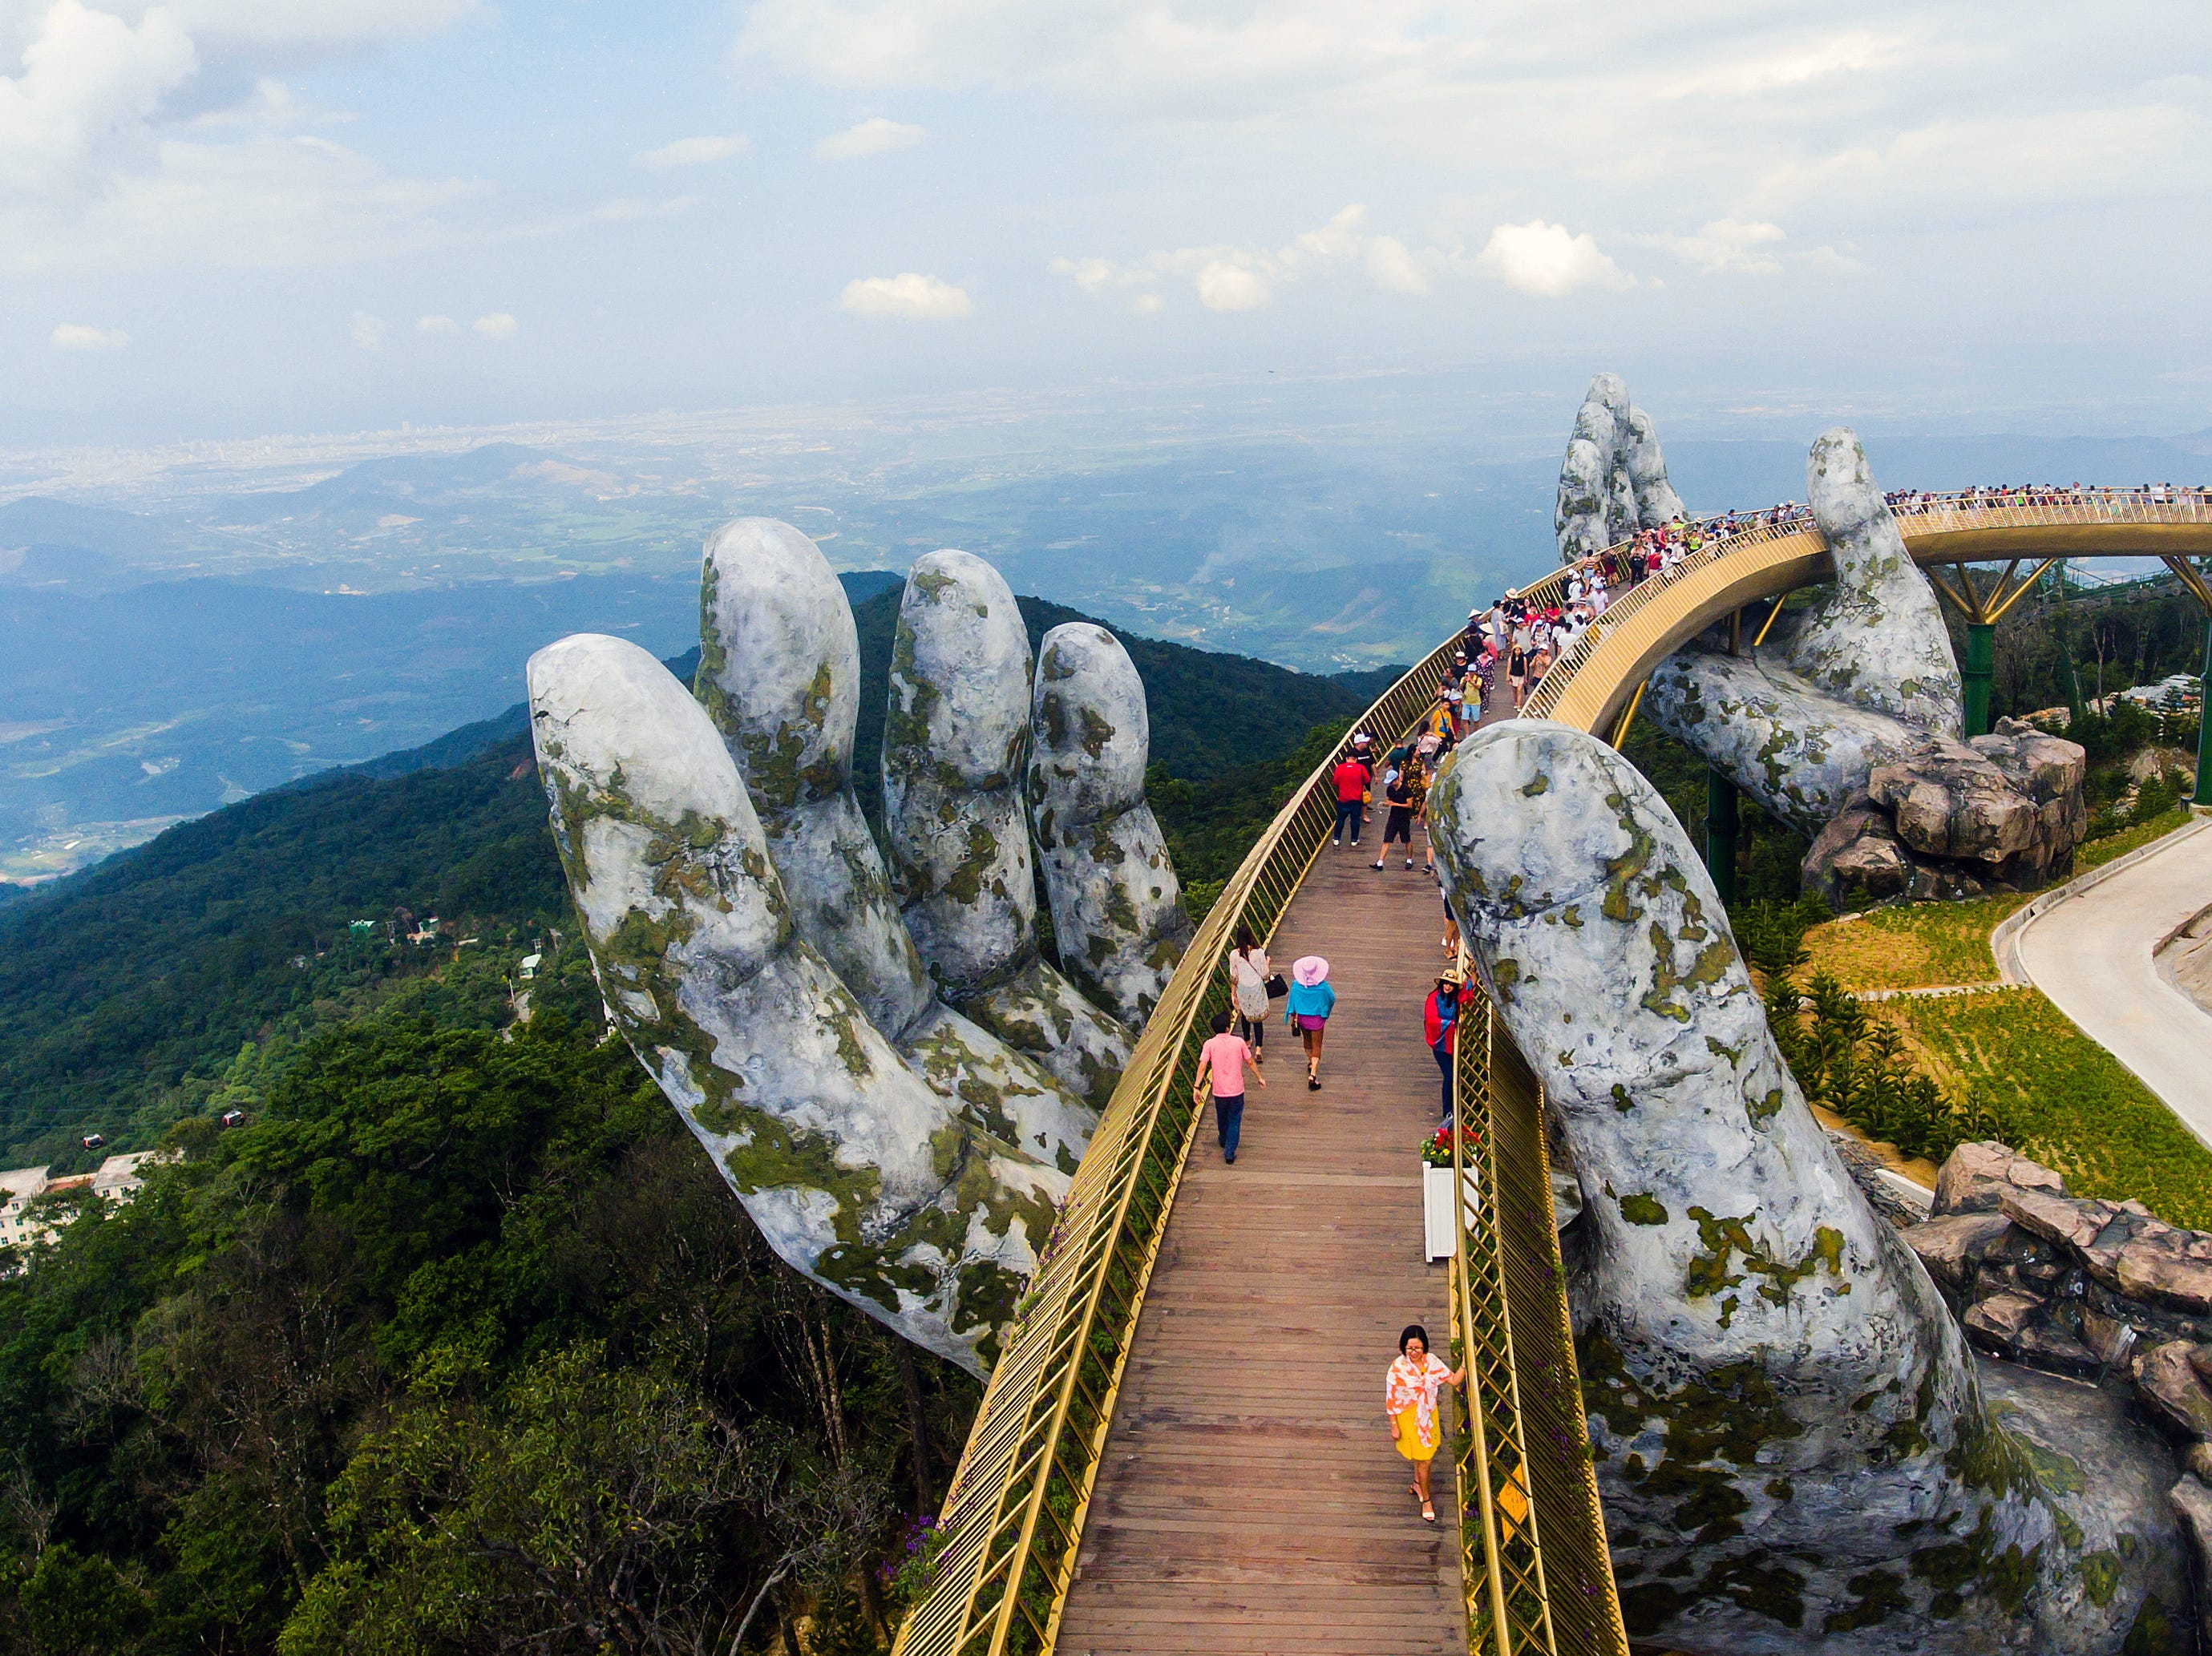 Aug. 3, 2018: A picture taken with a drone shows tourists walking on the newly built Cau Vang, meaning Golden Bridge on Ba Na hills near Da Nang city, Vietnam. The bridge which is more than 1,400m above sea level and stretches 150m long, is reportedly a part of a $2 billion dollar project to attract more visitors to Vietnam.